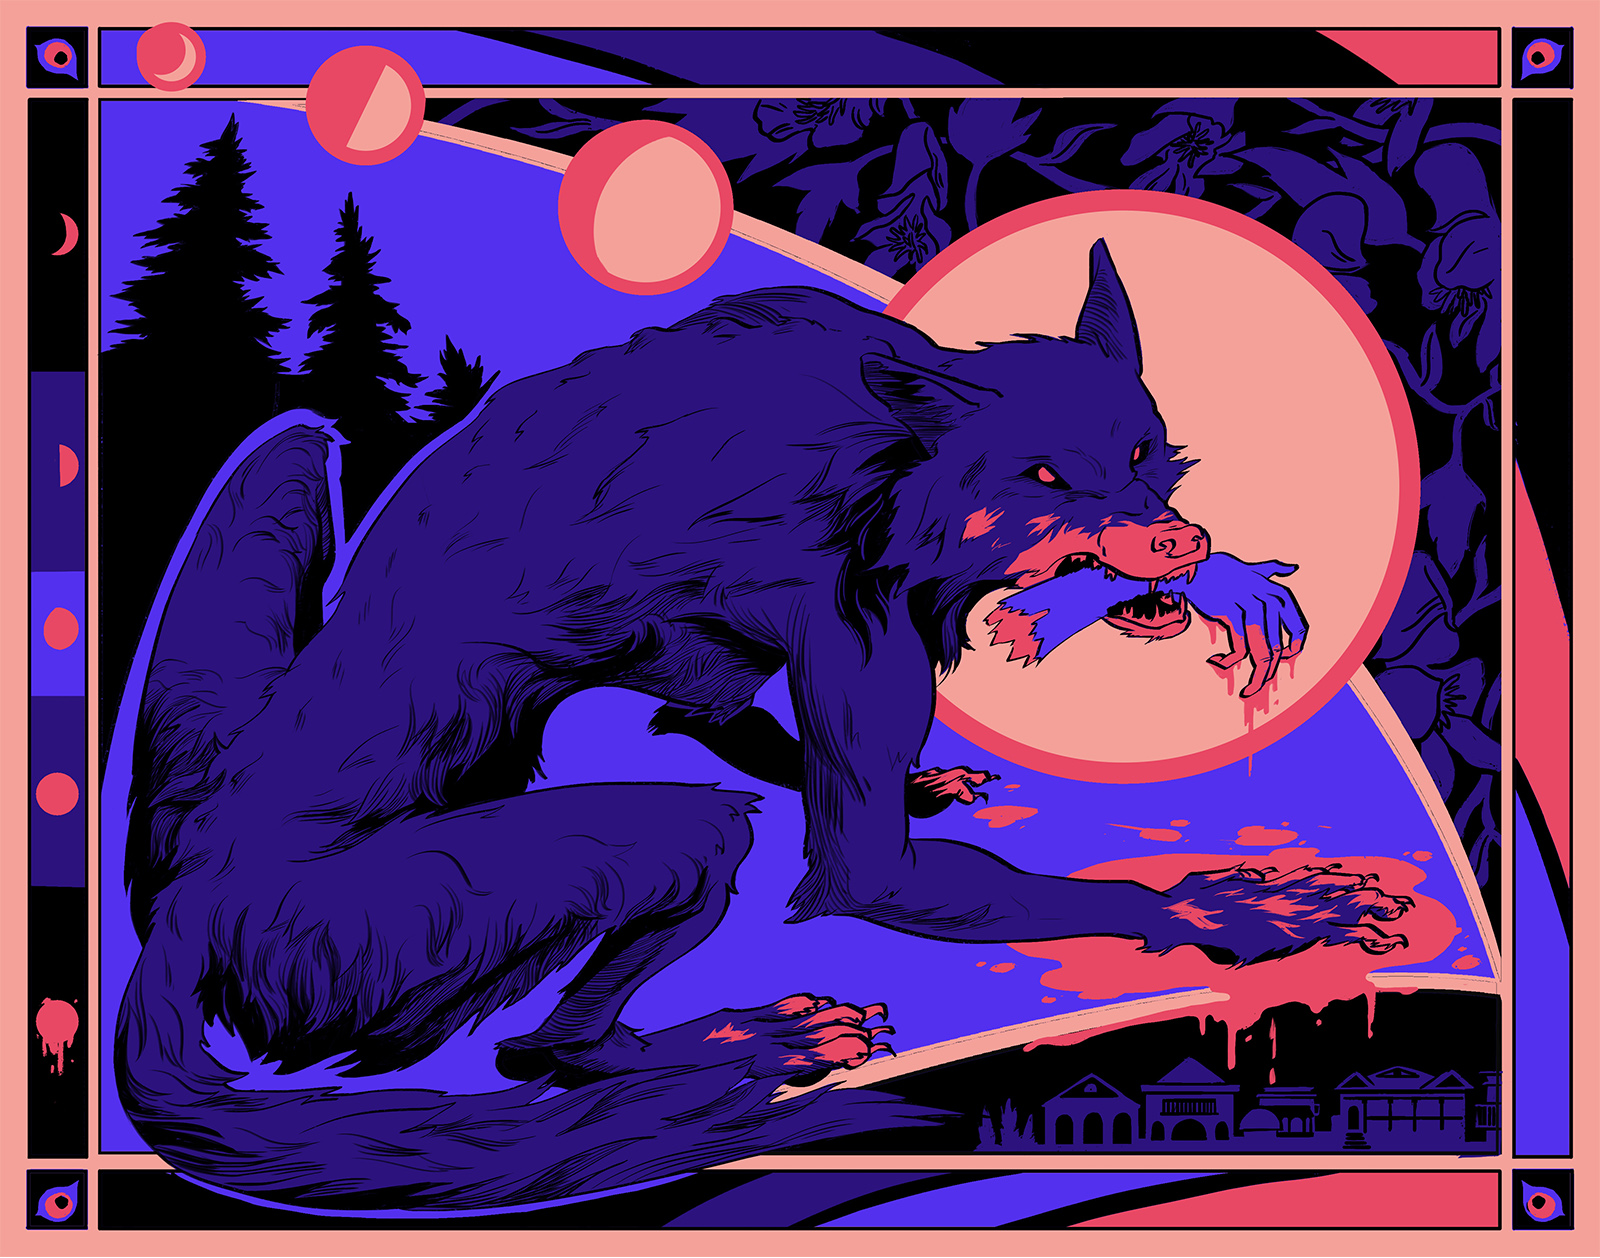 A poster design depicting a werewolf in the woods. The cycle of the moon leads to the wolf's head which is framed in the full moon. A severed hand hangs from it's mouth dripping blood into the pool at it's paws. Framing elements depicted wolfsbane flowers and a village.